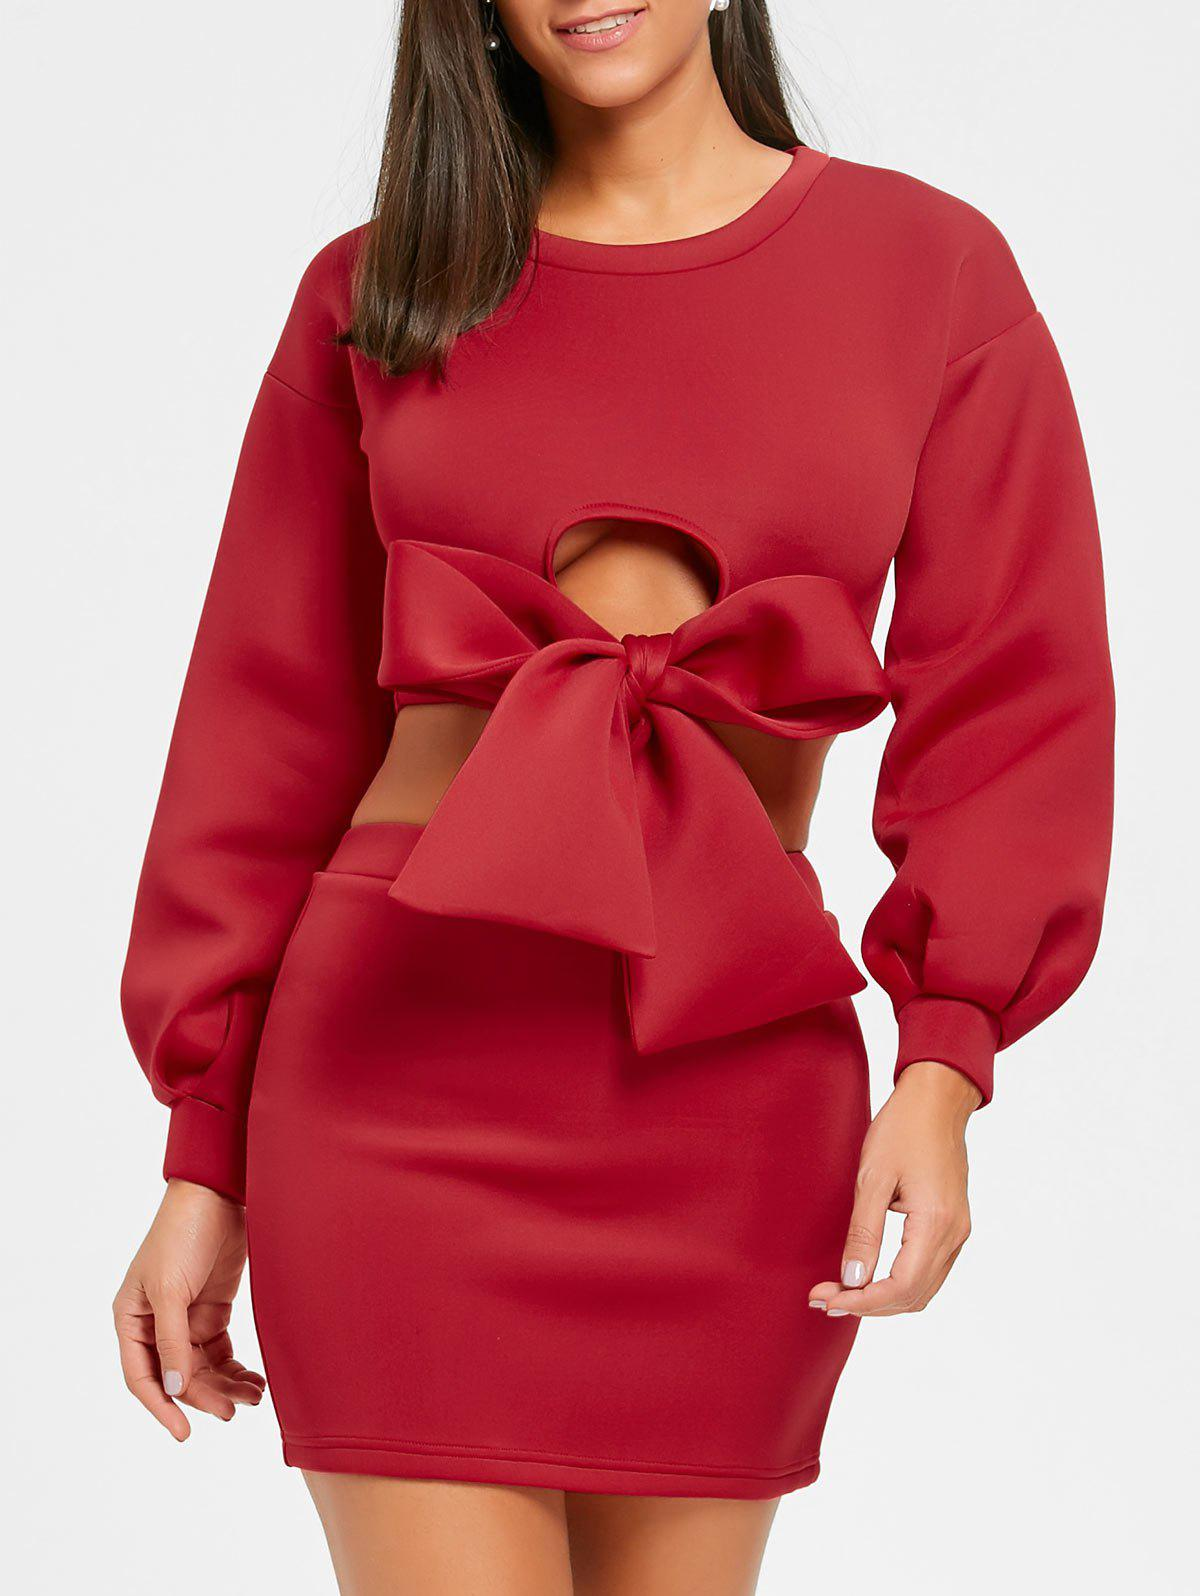 Cropped Long Sleeve Top and Mini Skirt - RED S